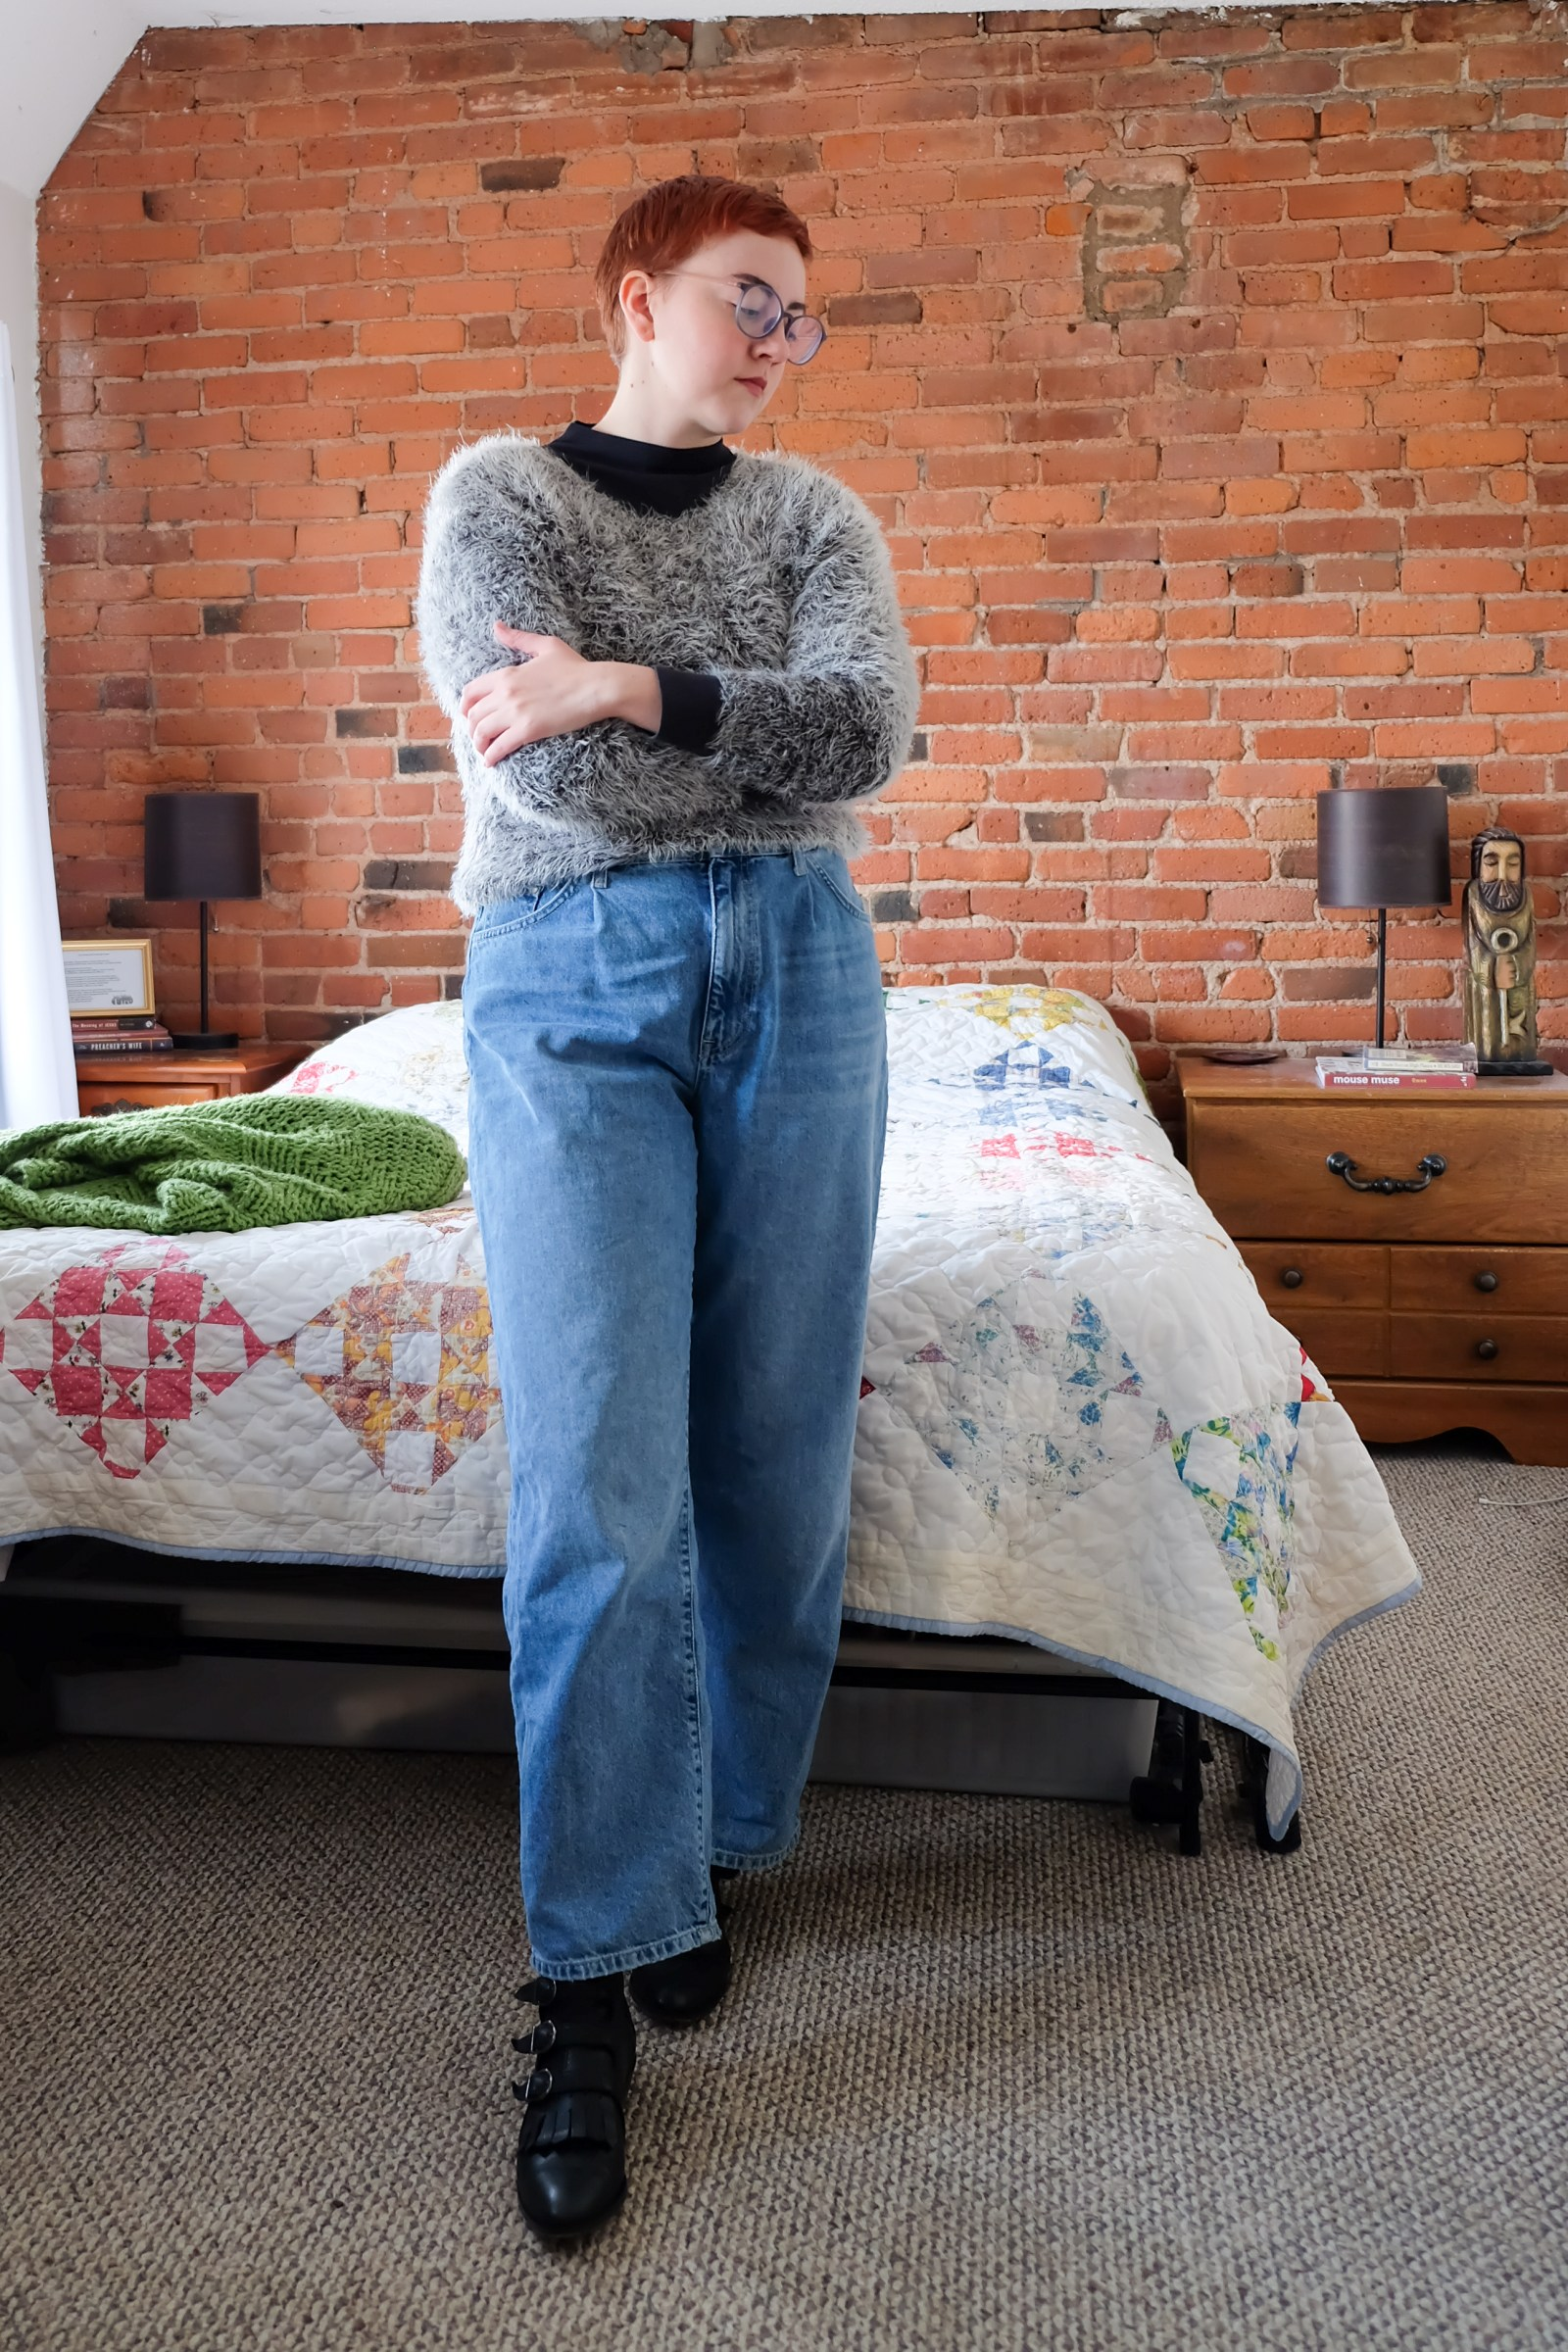 90s style baggy jeans